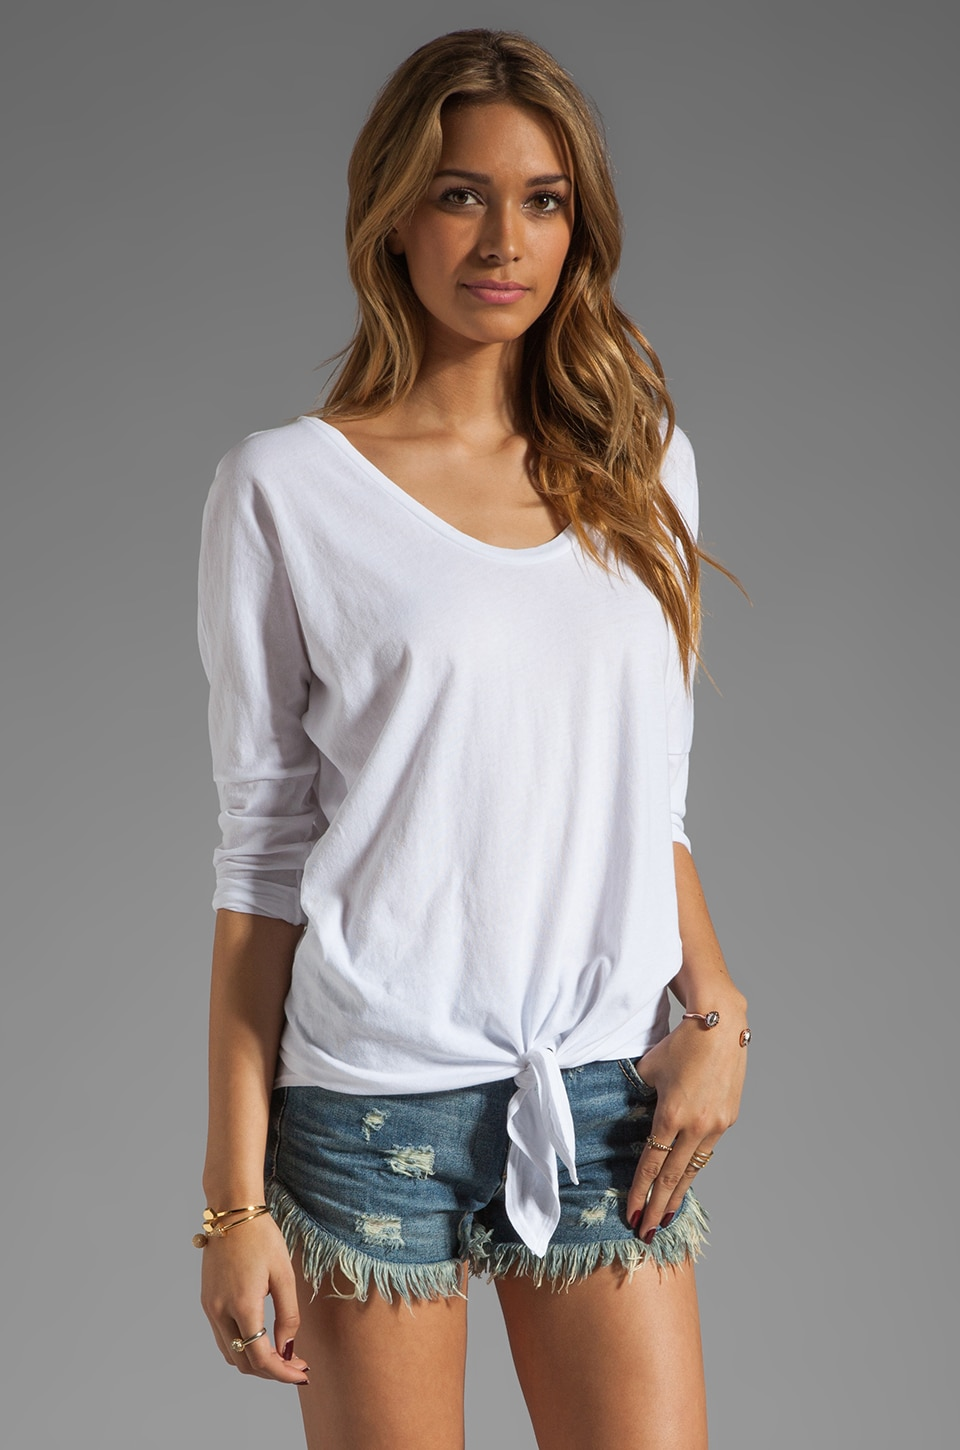 C&C California 3/4 Sleeve Dolman Tie-Front Tee in White